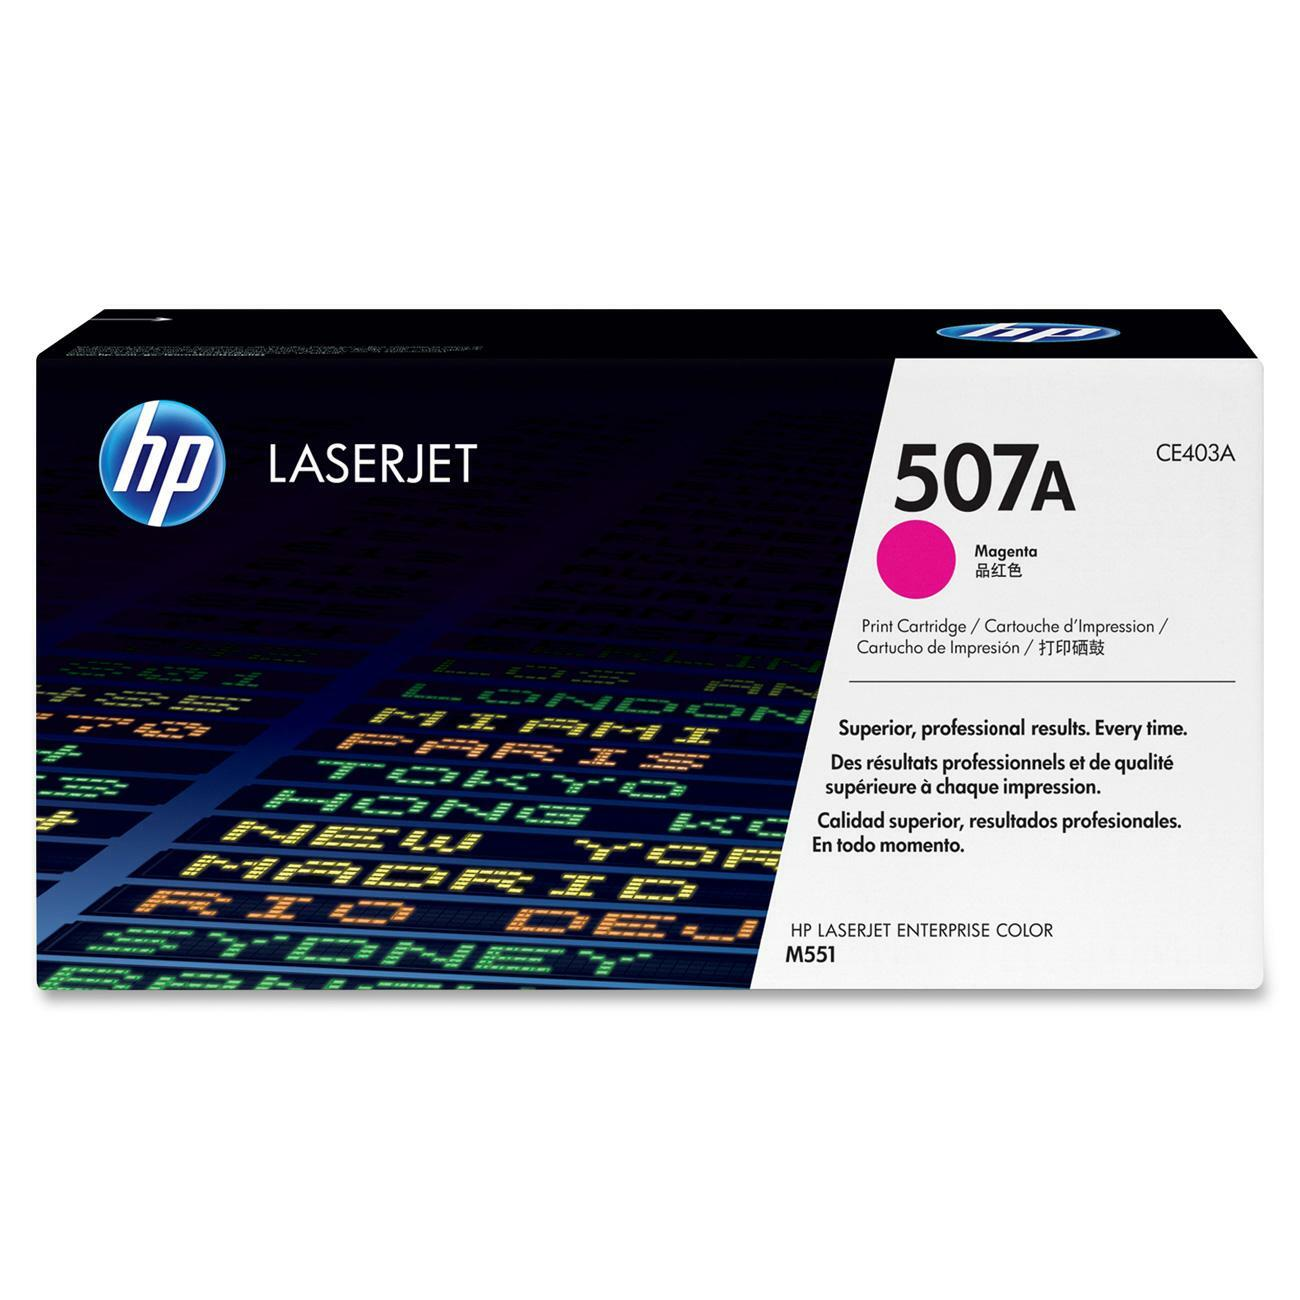 HP 507A Toner Cartridge - Magenta - Thumbnail 0